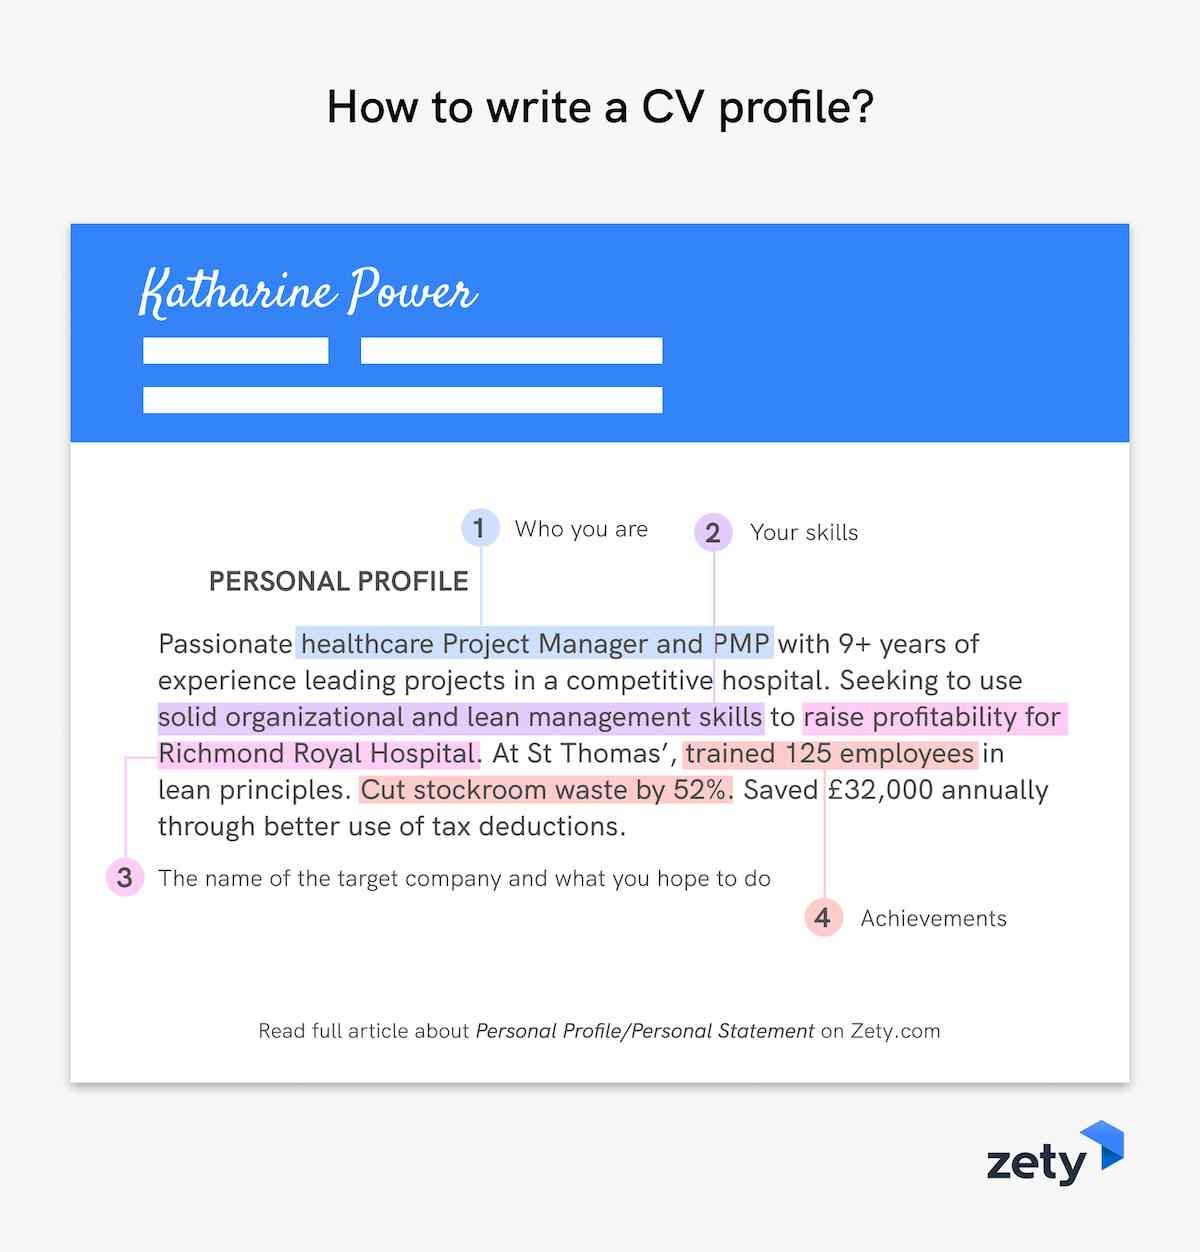 How to write a CV profile